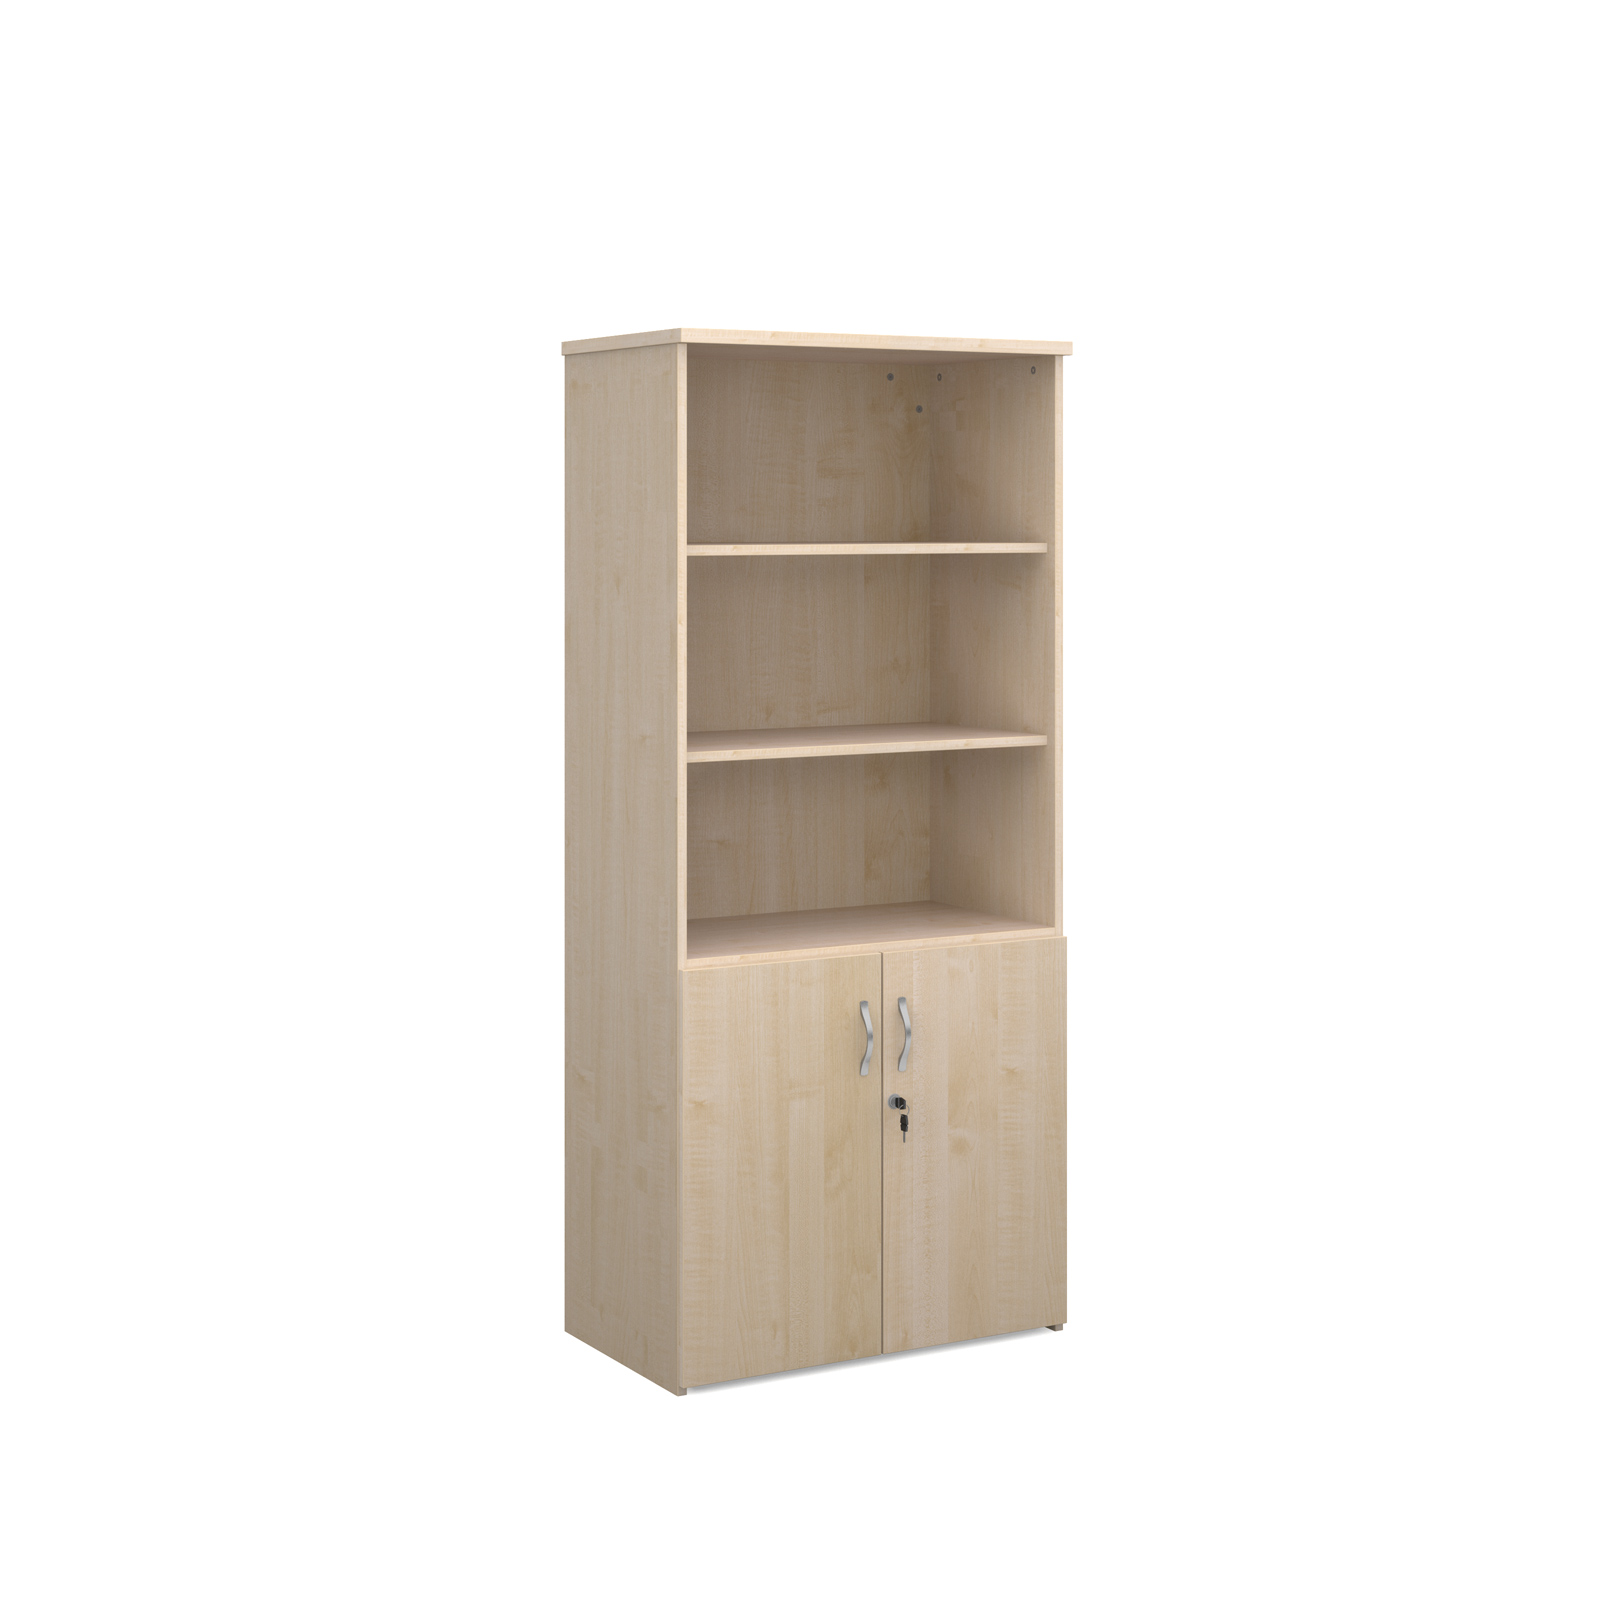 1790mm high combination unit with open top and wood doors in maple